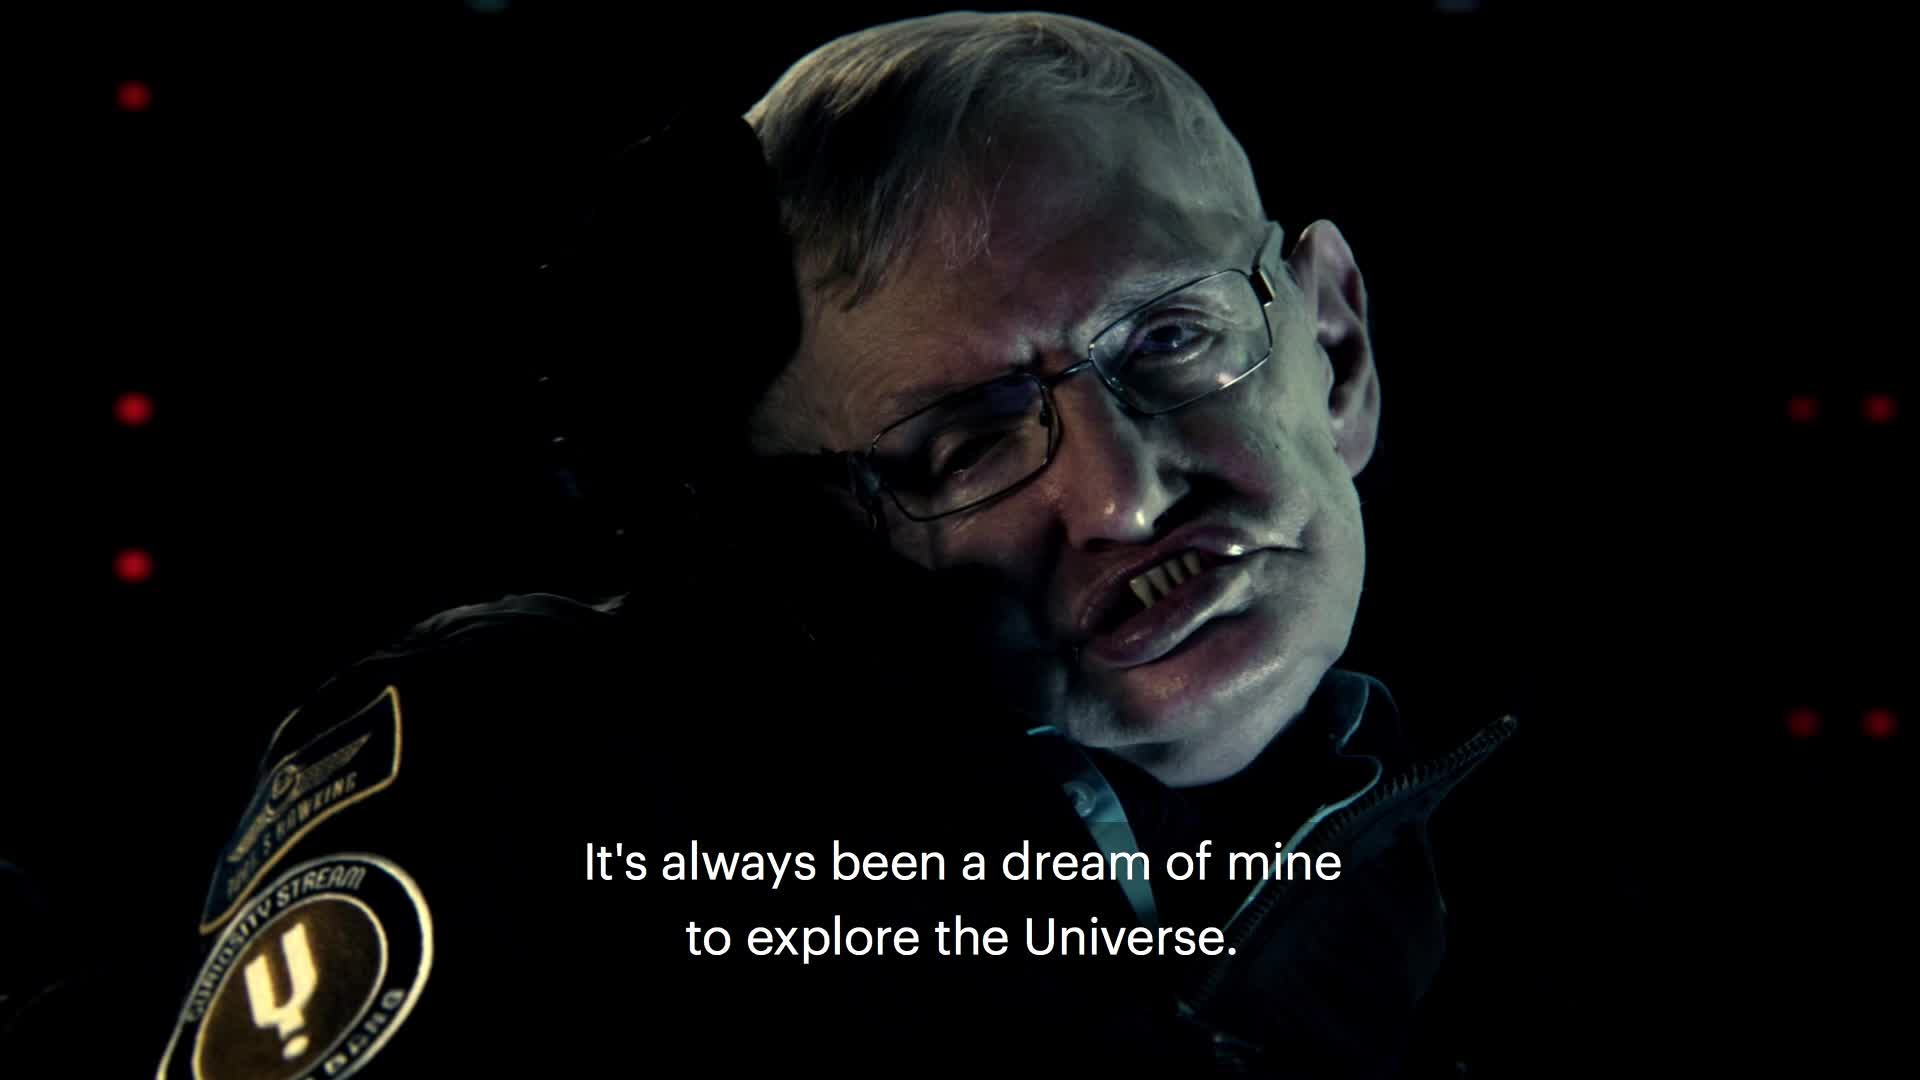 Join renowned astrophysicist Stephen Hawking, one of the most brilliant minds of our time, in an extraordinary journey across the cosmos.  Go along for the ride as he shares his own personal story of inspiration and perseverance and guides us through the origins of the cosmos, alien life, his own life, and our place in the universe, exclusively on CuriosityStream.